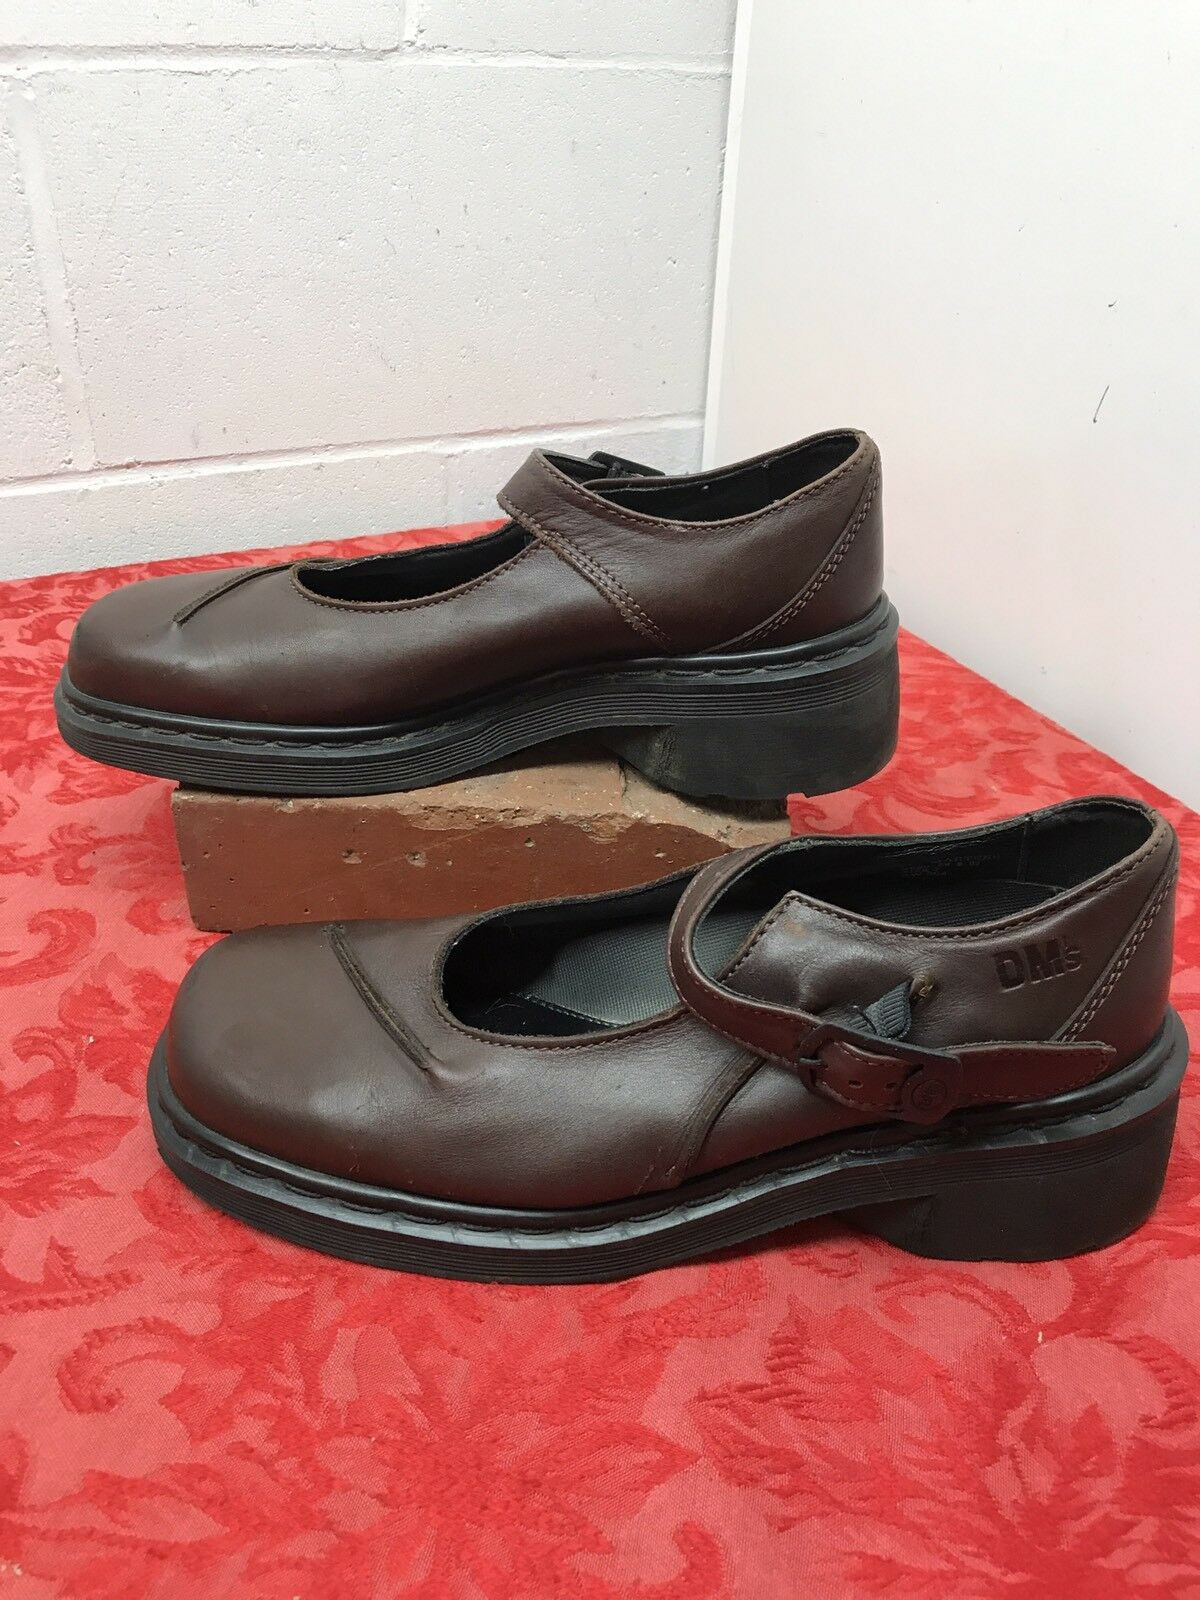 Original Doc Dr. Martens Brown Mary Jane shoes Women's US 9 UK 7 Leather Buckle